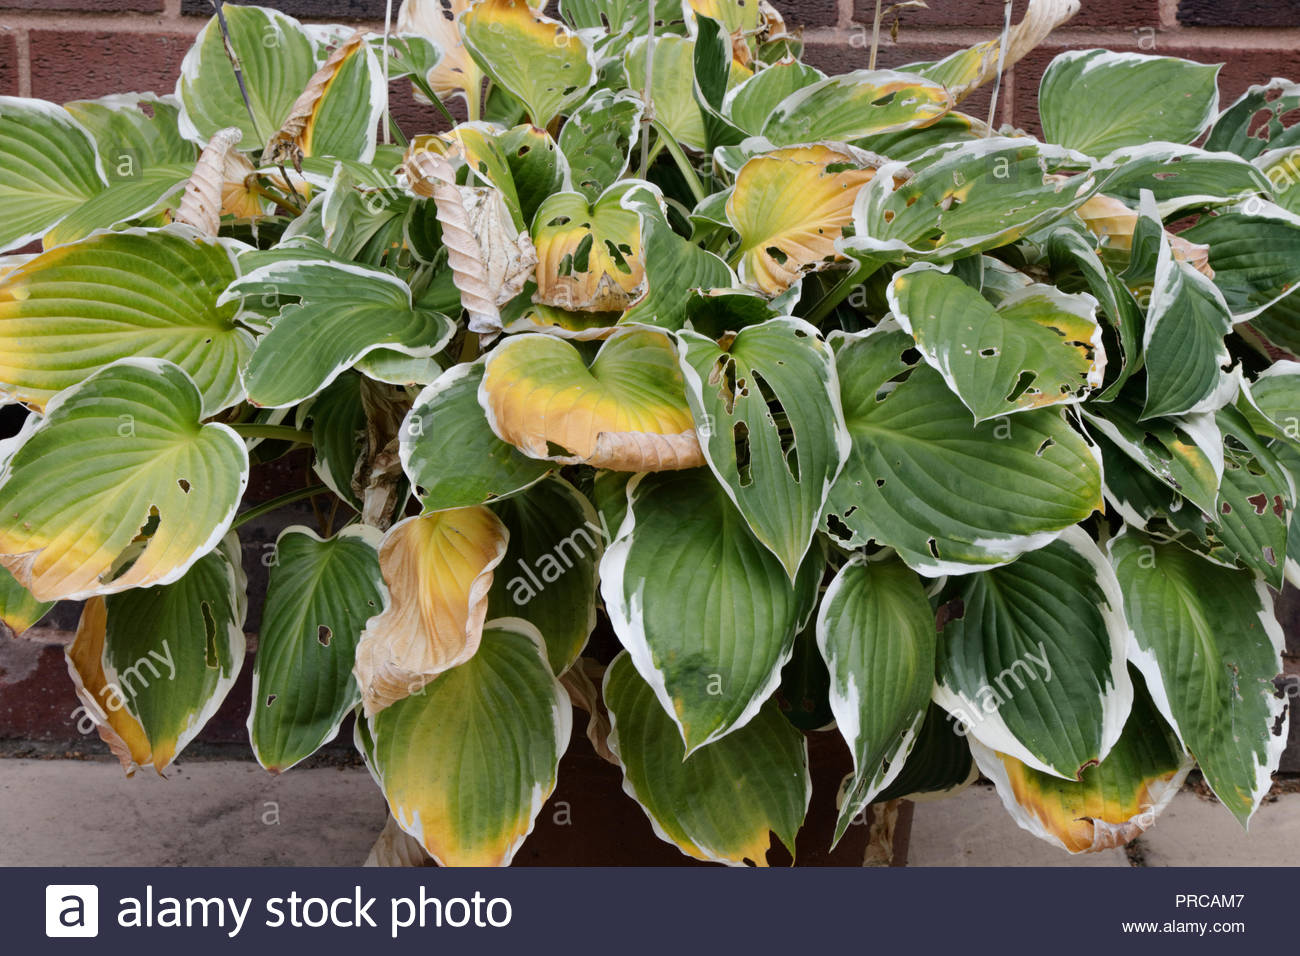 Hostas Plant With Holes In Leaves From Slug Bites Stock Photo